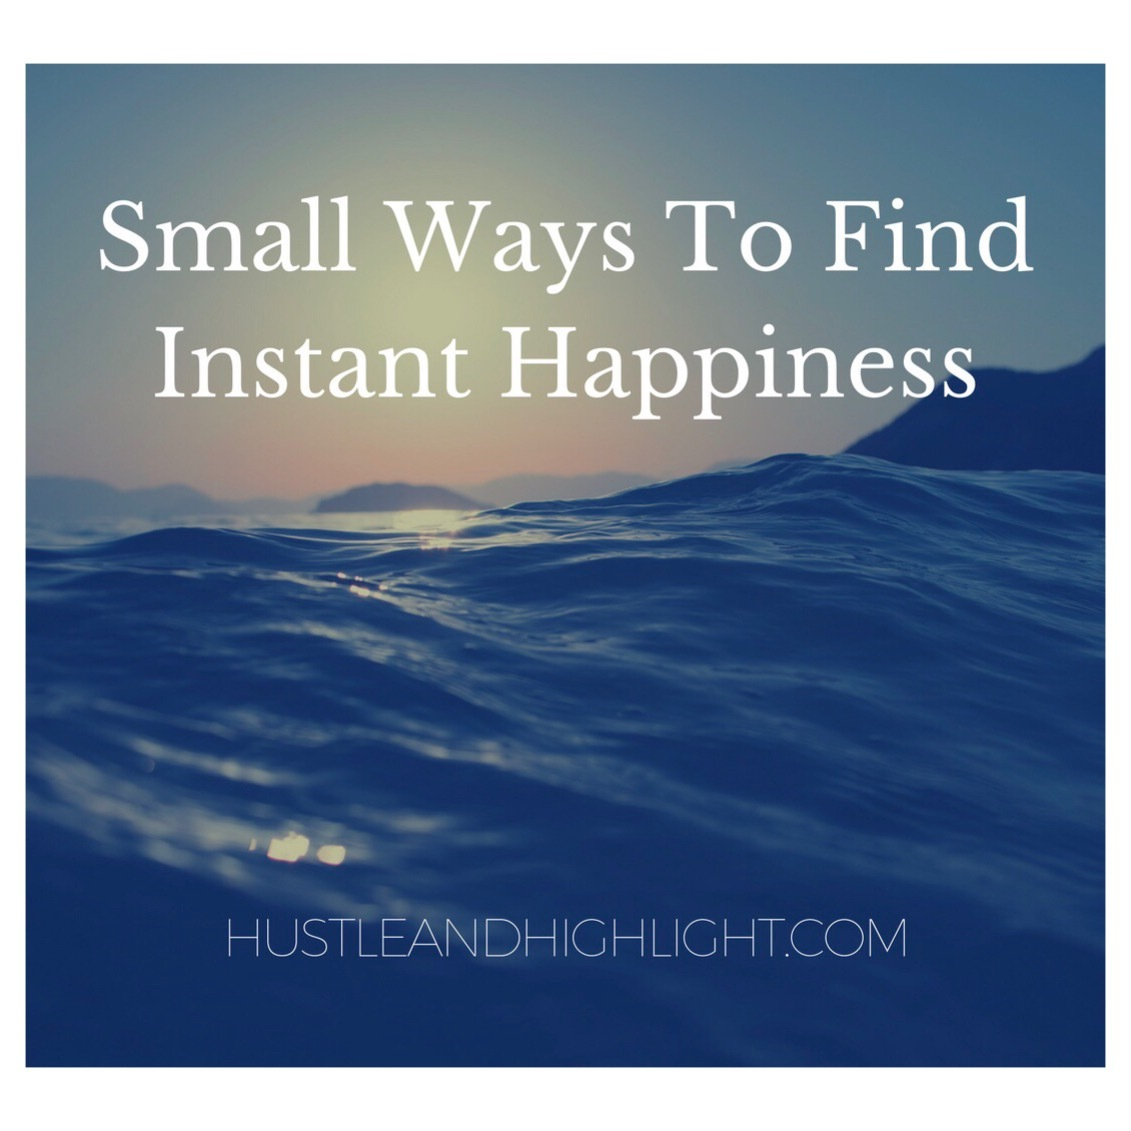 Small Ways to Feel Instant Happiness